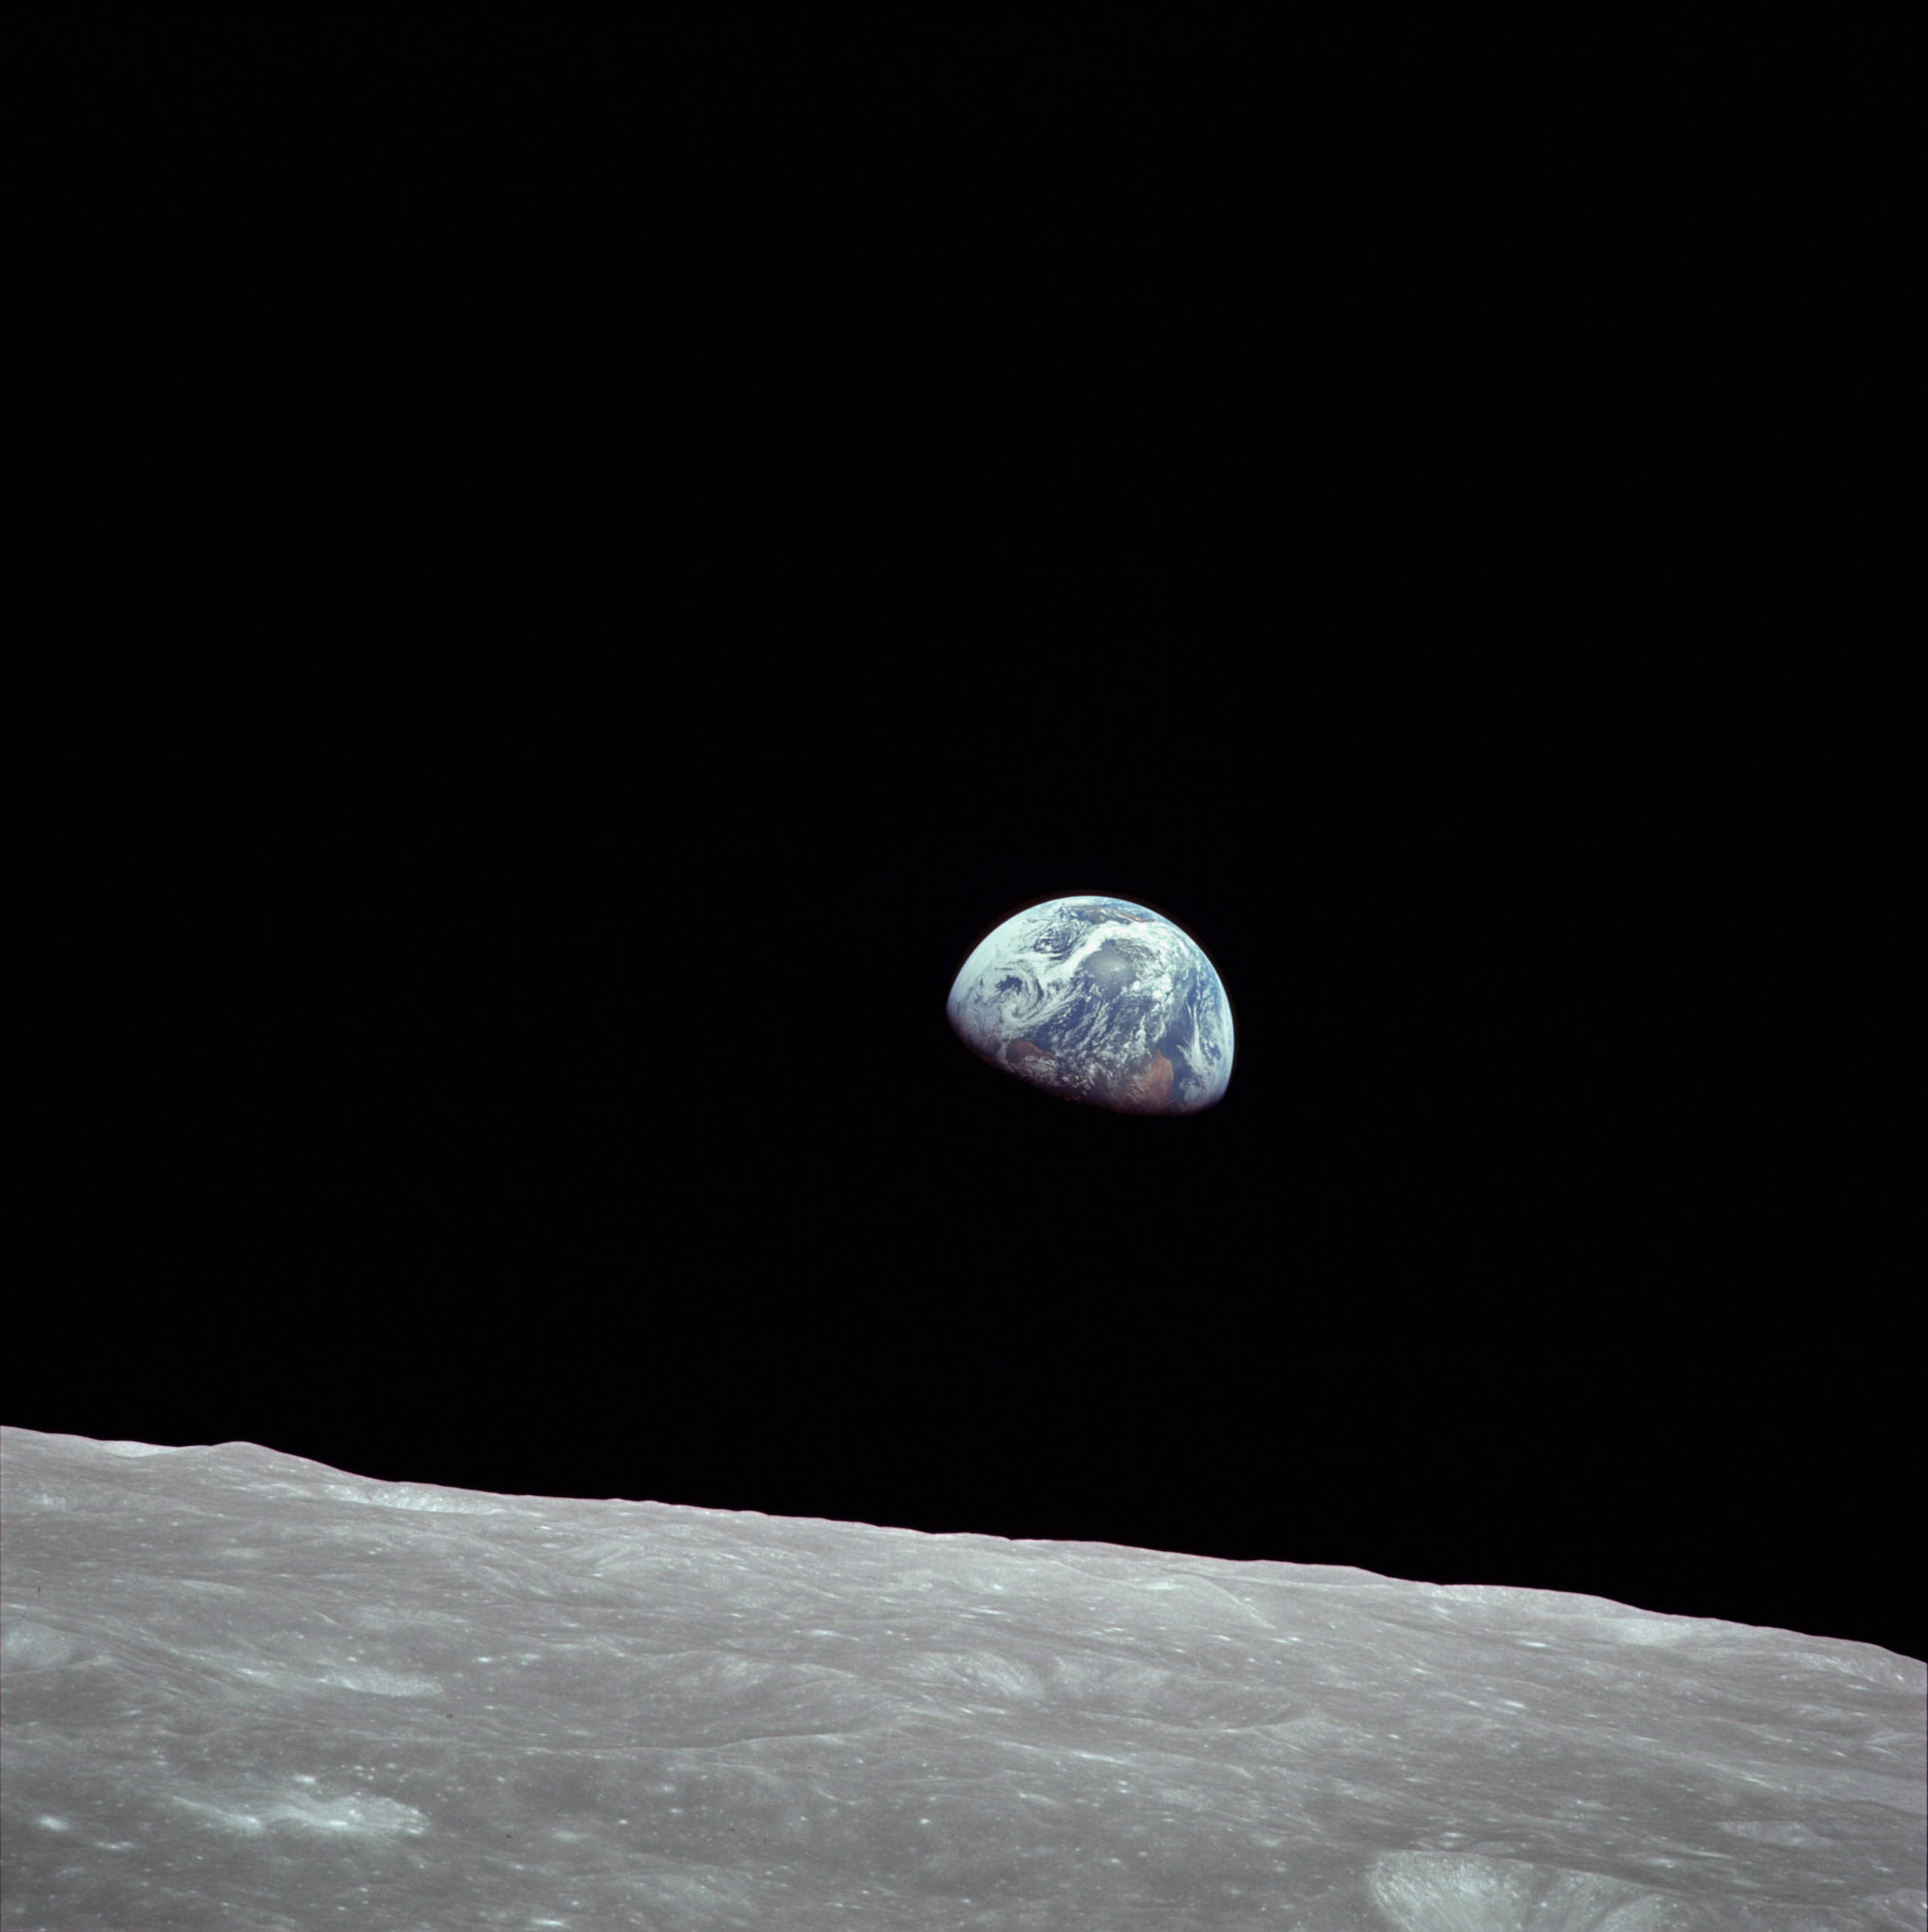 Earthrise. Taken on 24 December 1968, by the crew of Apollo 8.